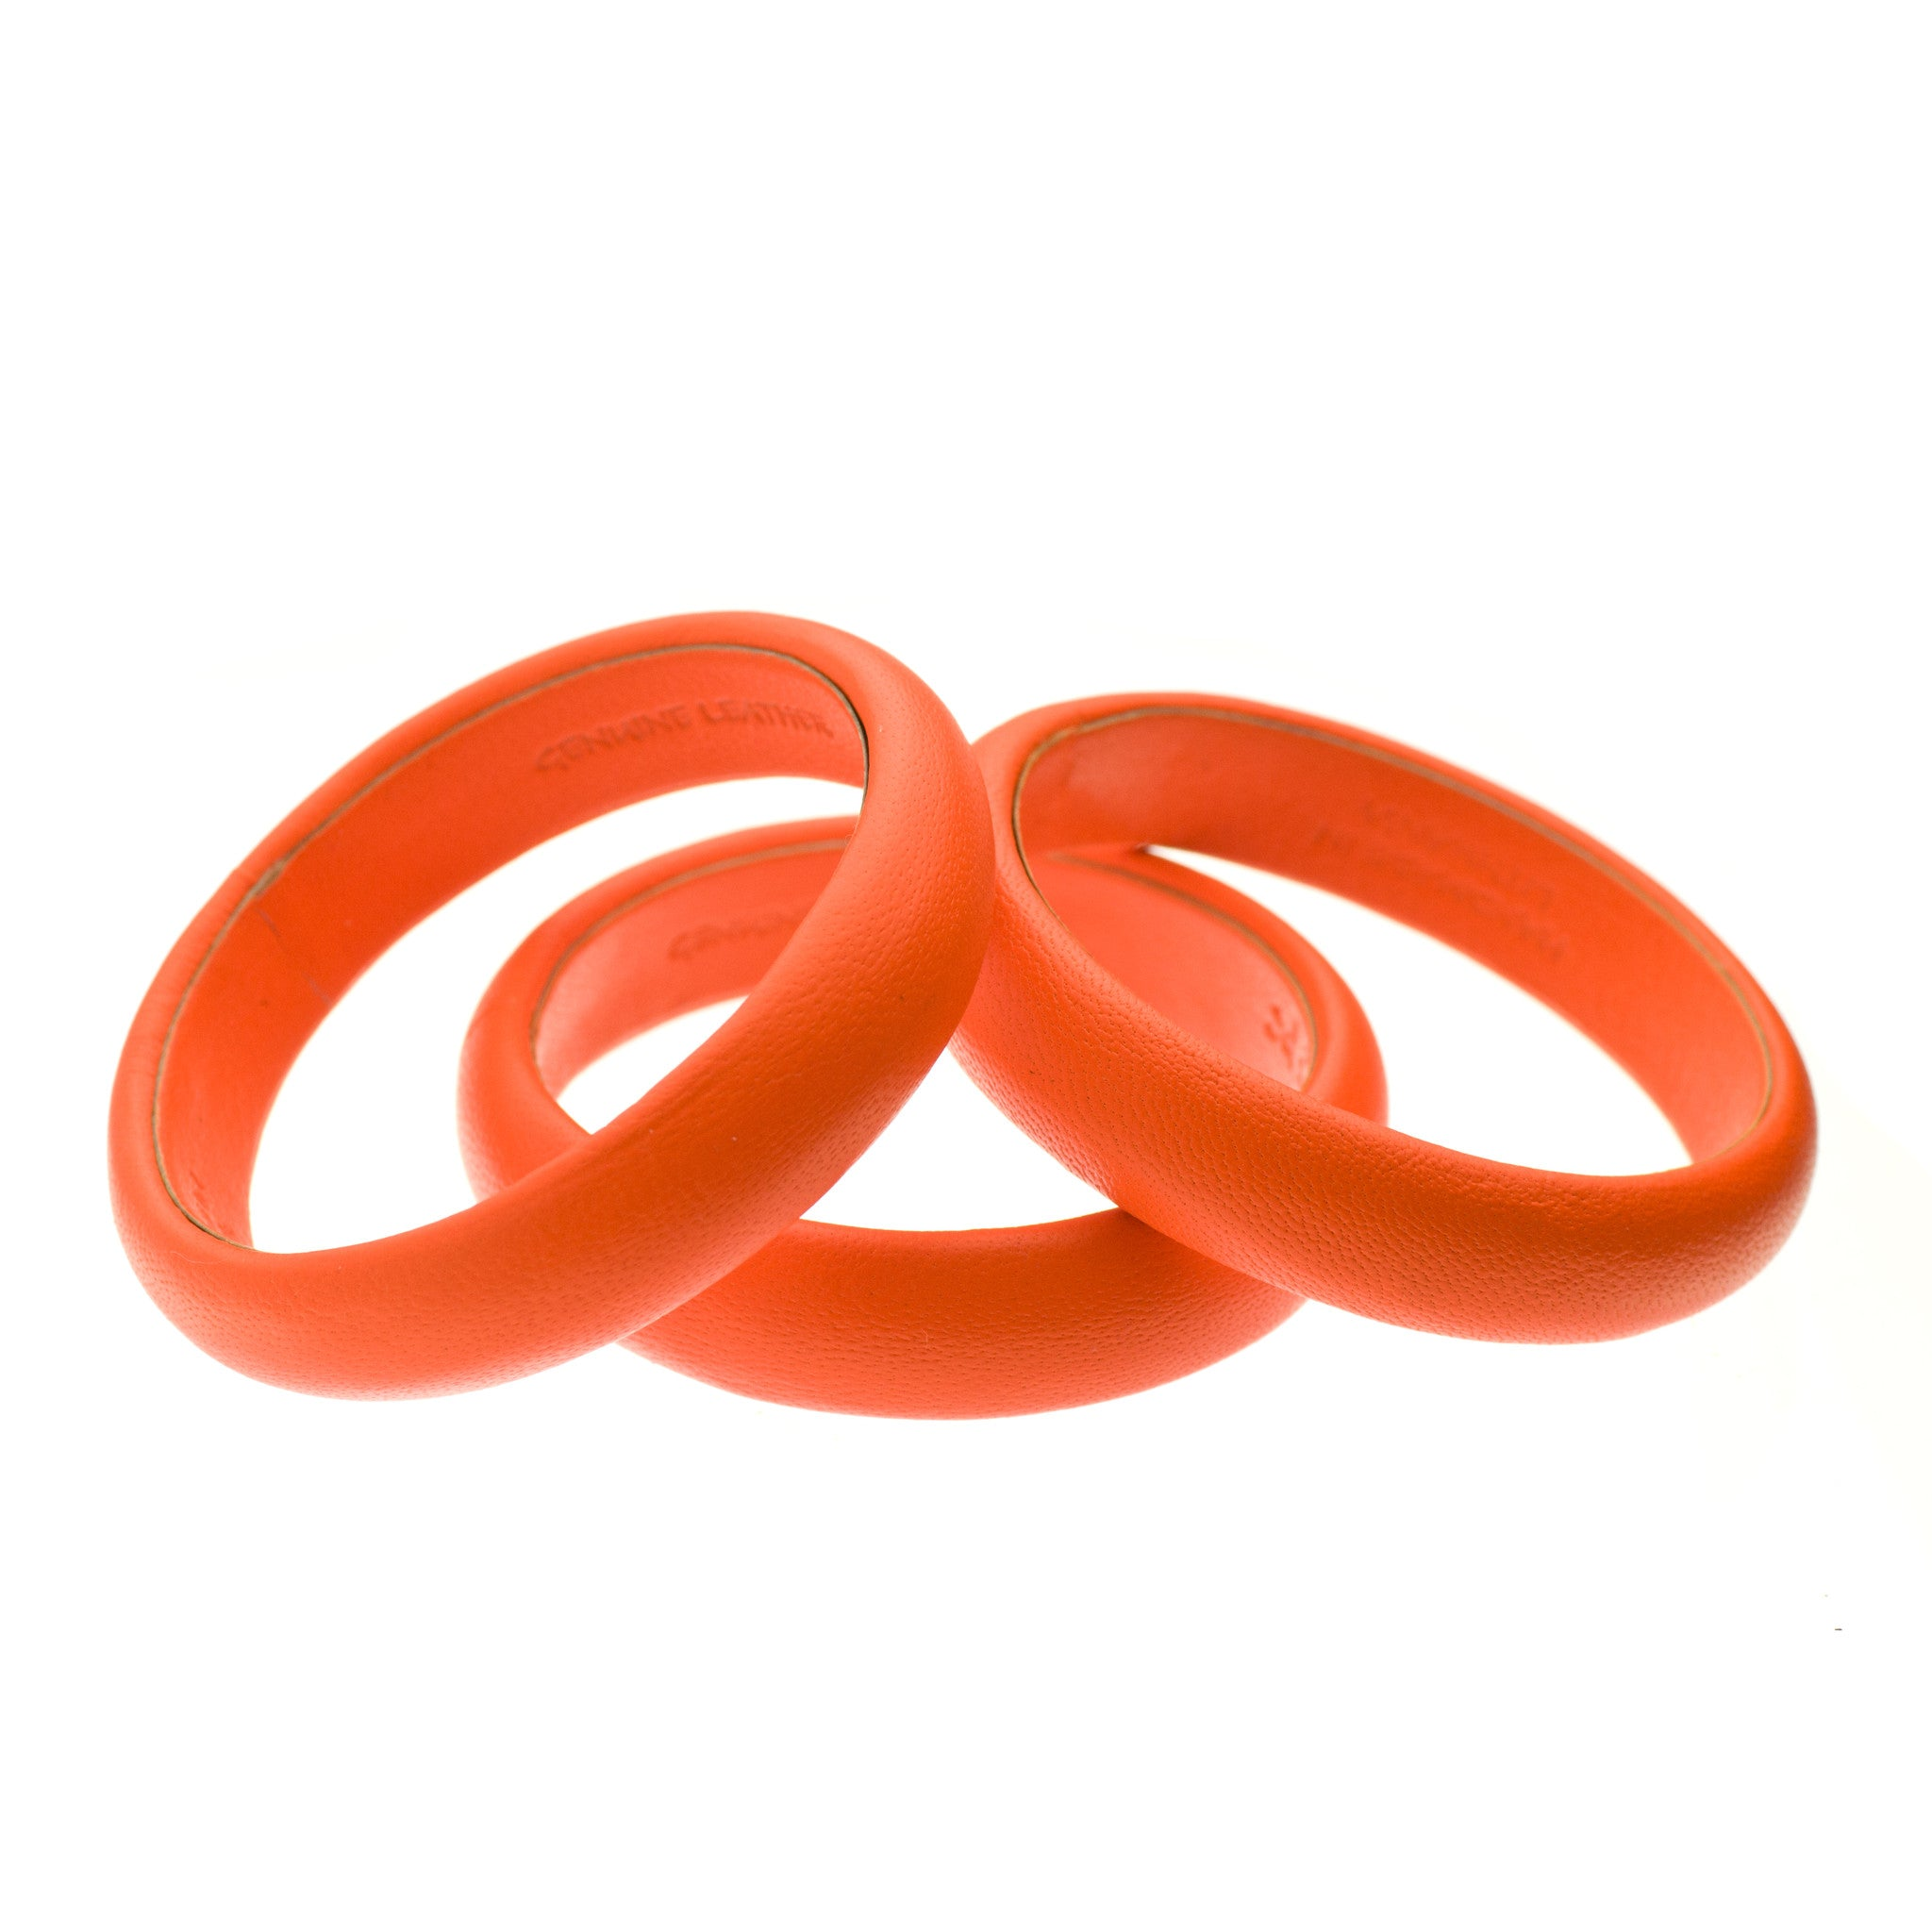 Fluorescent Neon Orange Leather Bangle Bracelet inside made in Lithuania sd1Twenty5